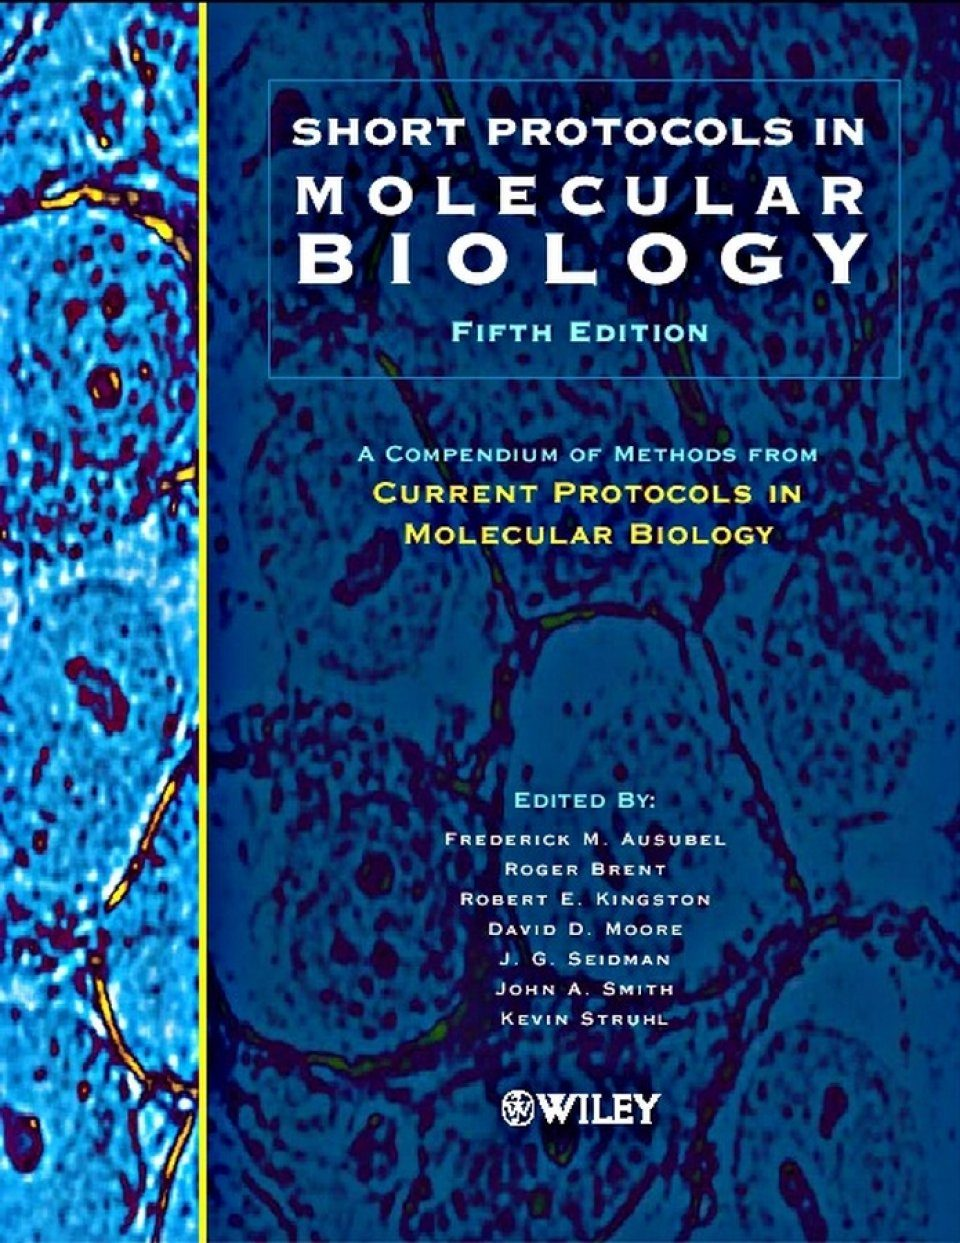 Short Protocols in Molecular Biology